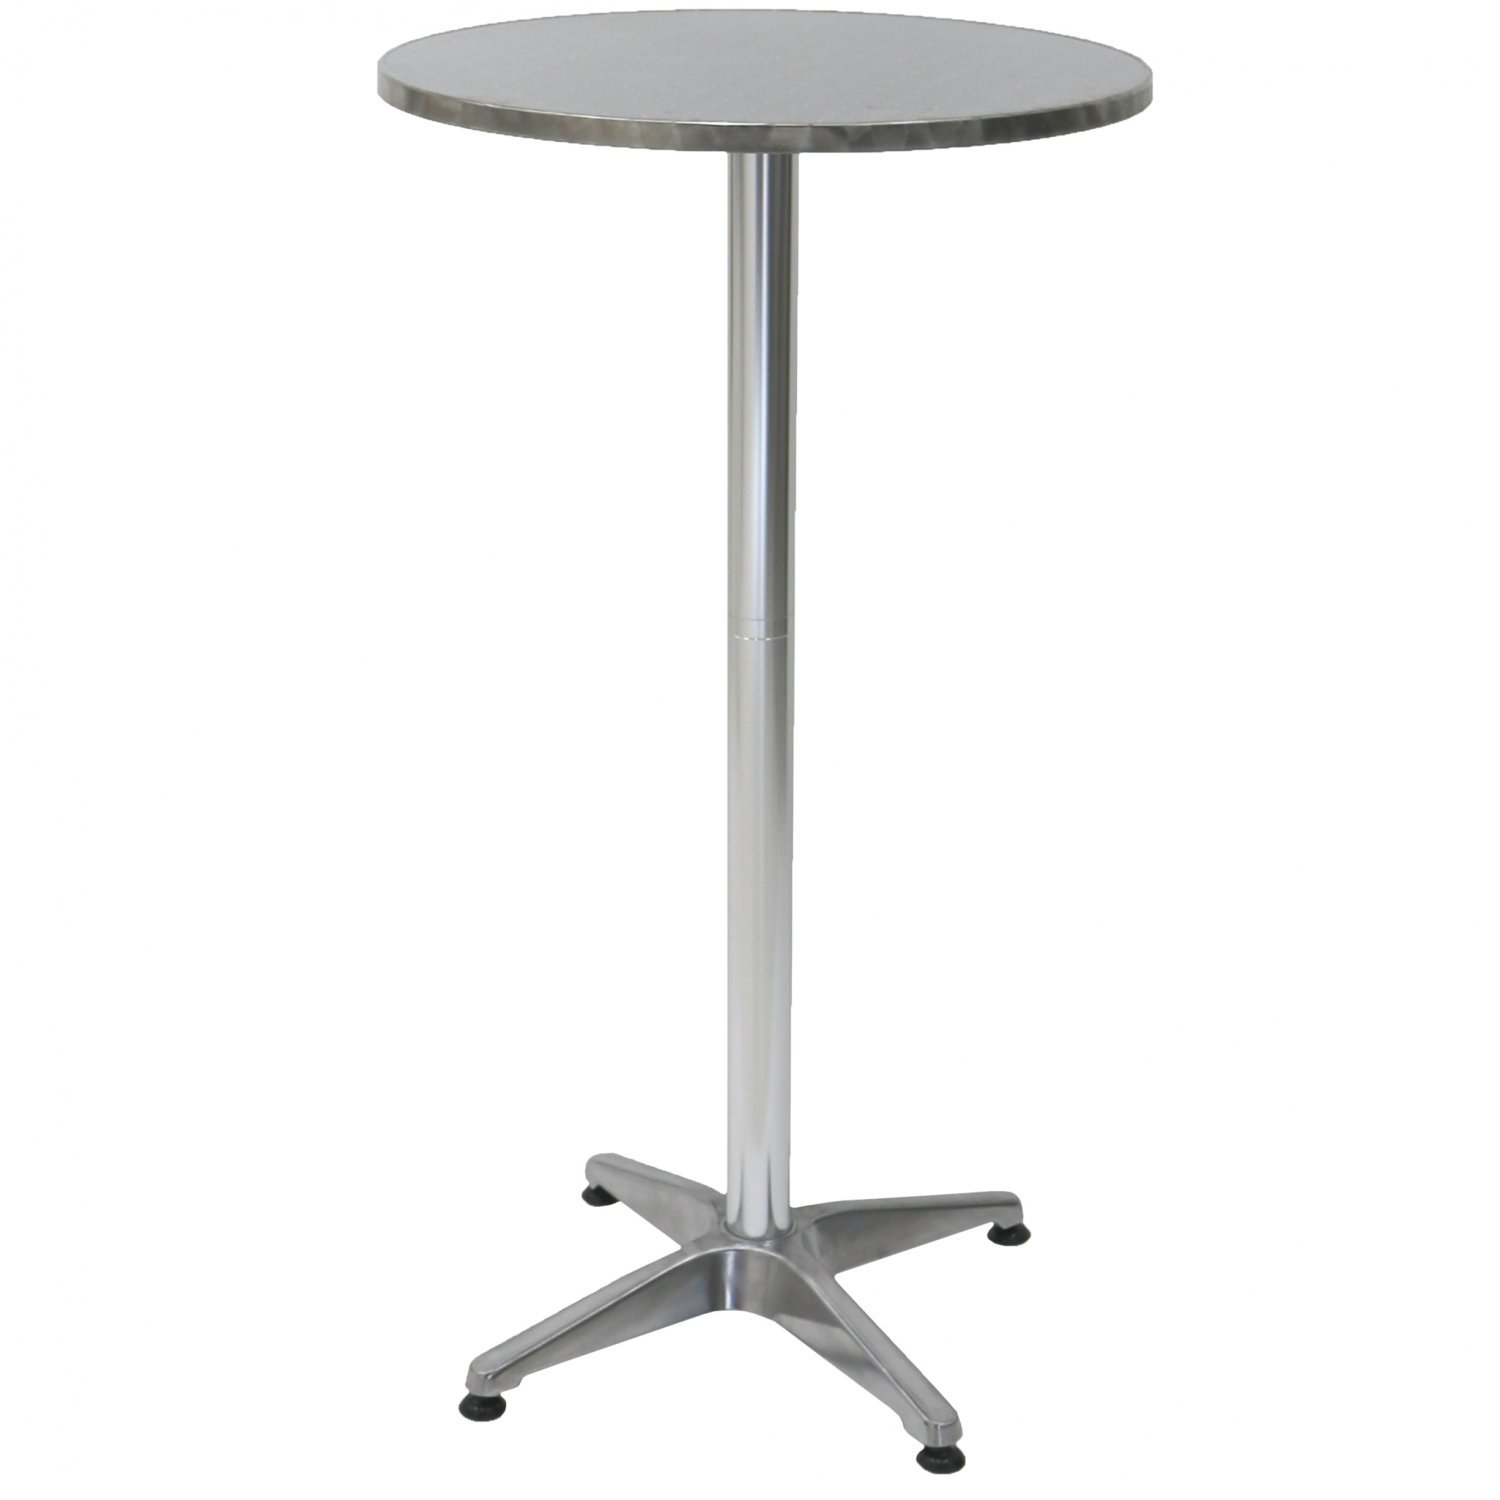 1 1m Aluminium Bistro Table Bar Pub Cafe Party Adjustable